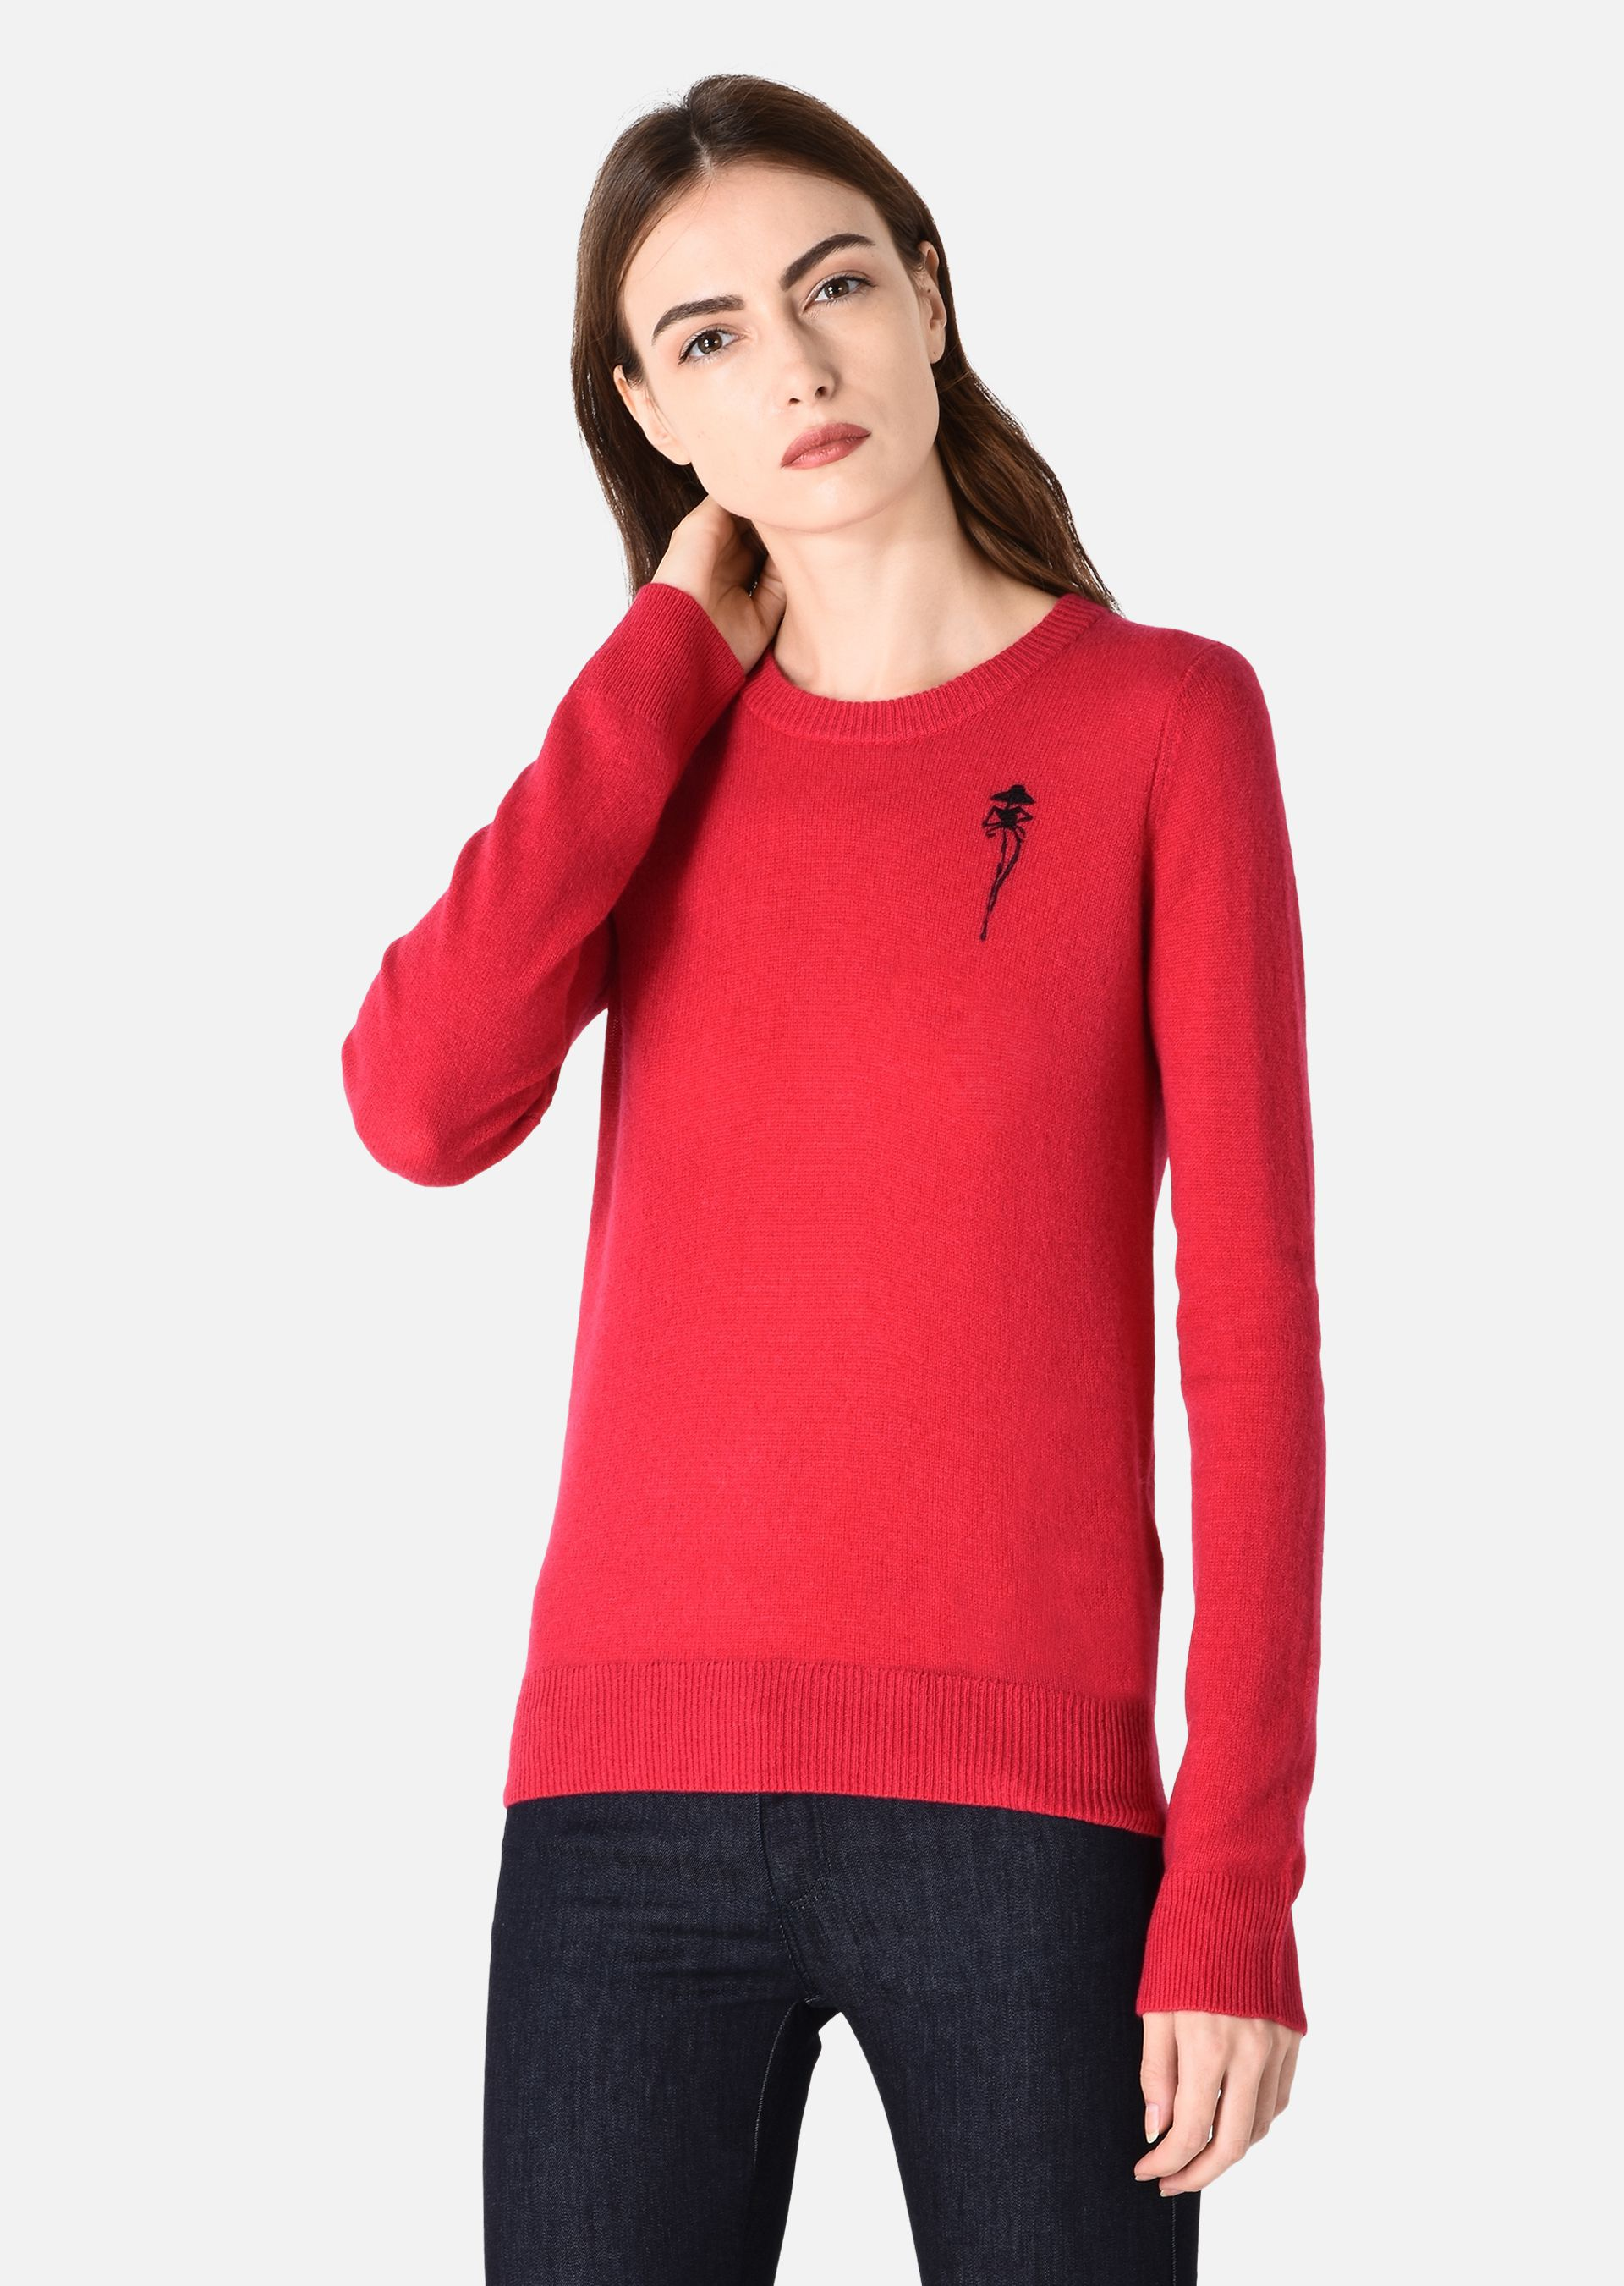 CASHMERE SWEATER WITH MAQUETTE EMBROIDERY for Women | Emporio Armani